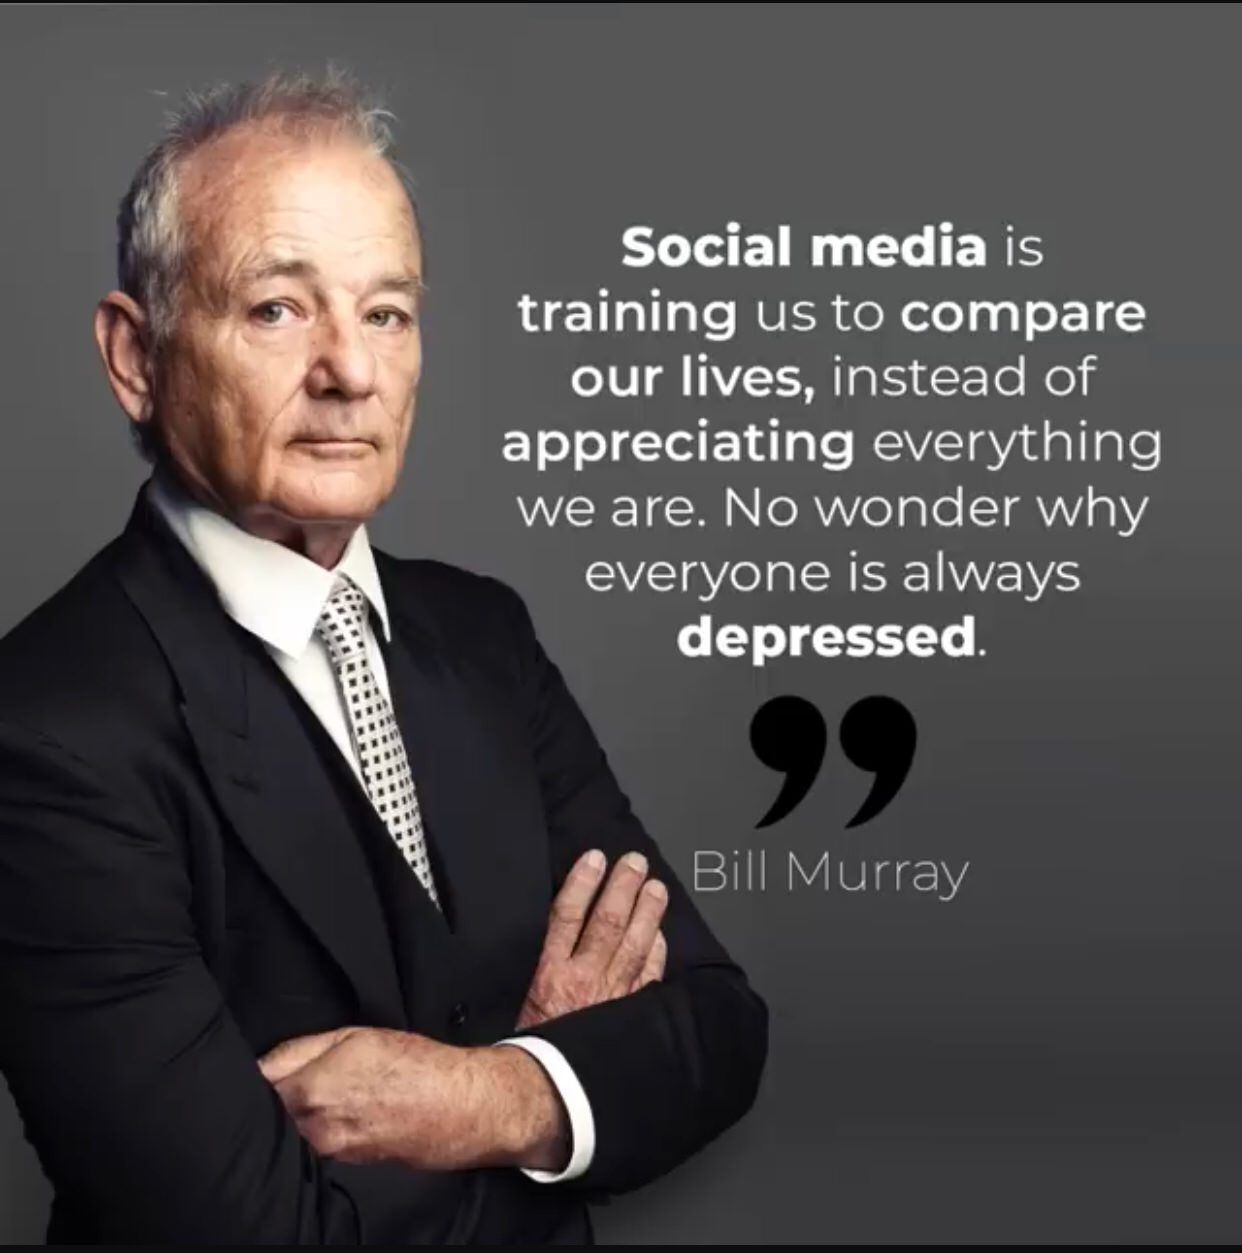 """Social media is training us to compare our lives, instead of appreciating everything we are. No wonder why everyone is depressed."" – Bill Murray [1242×1253]"